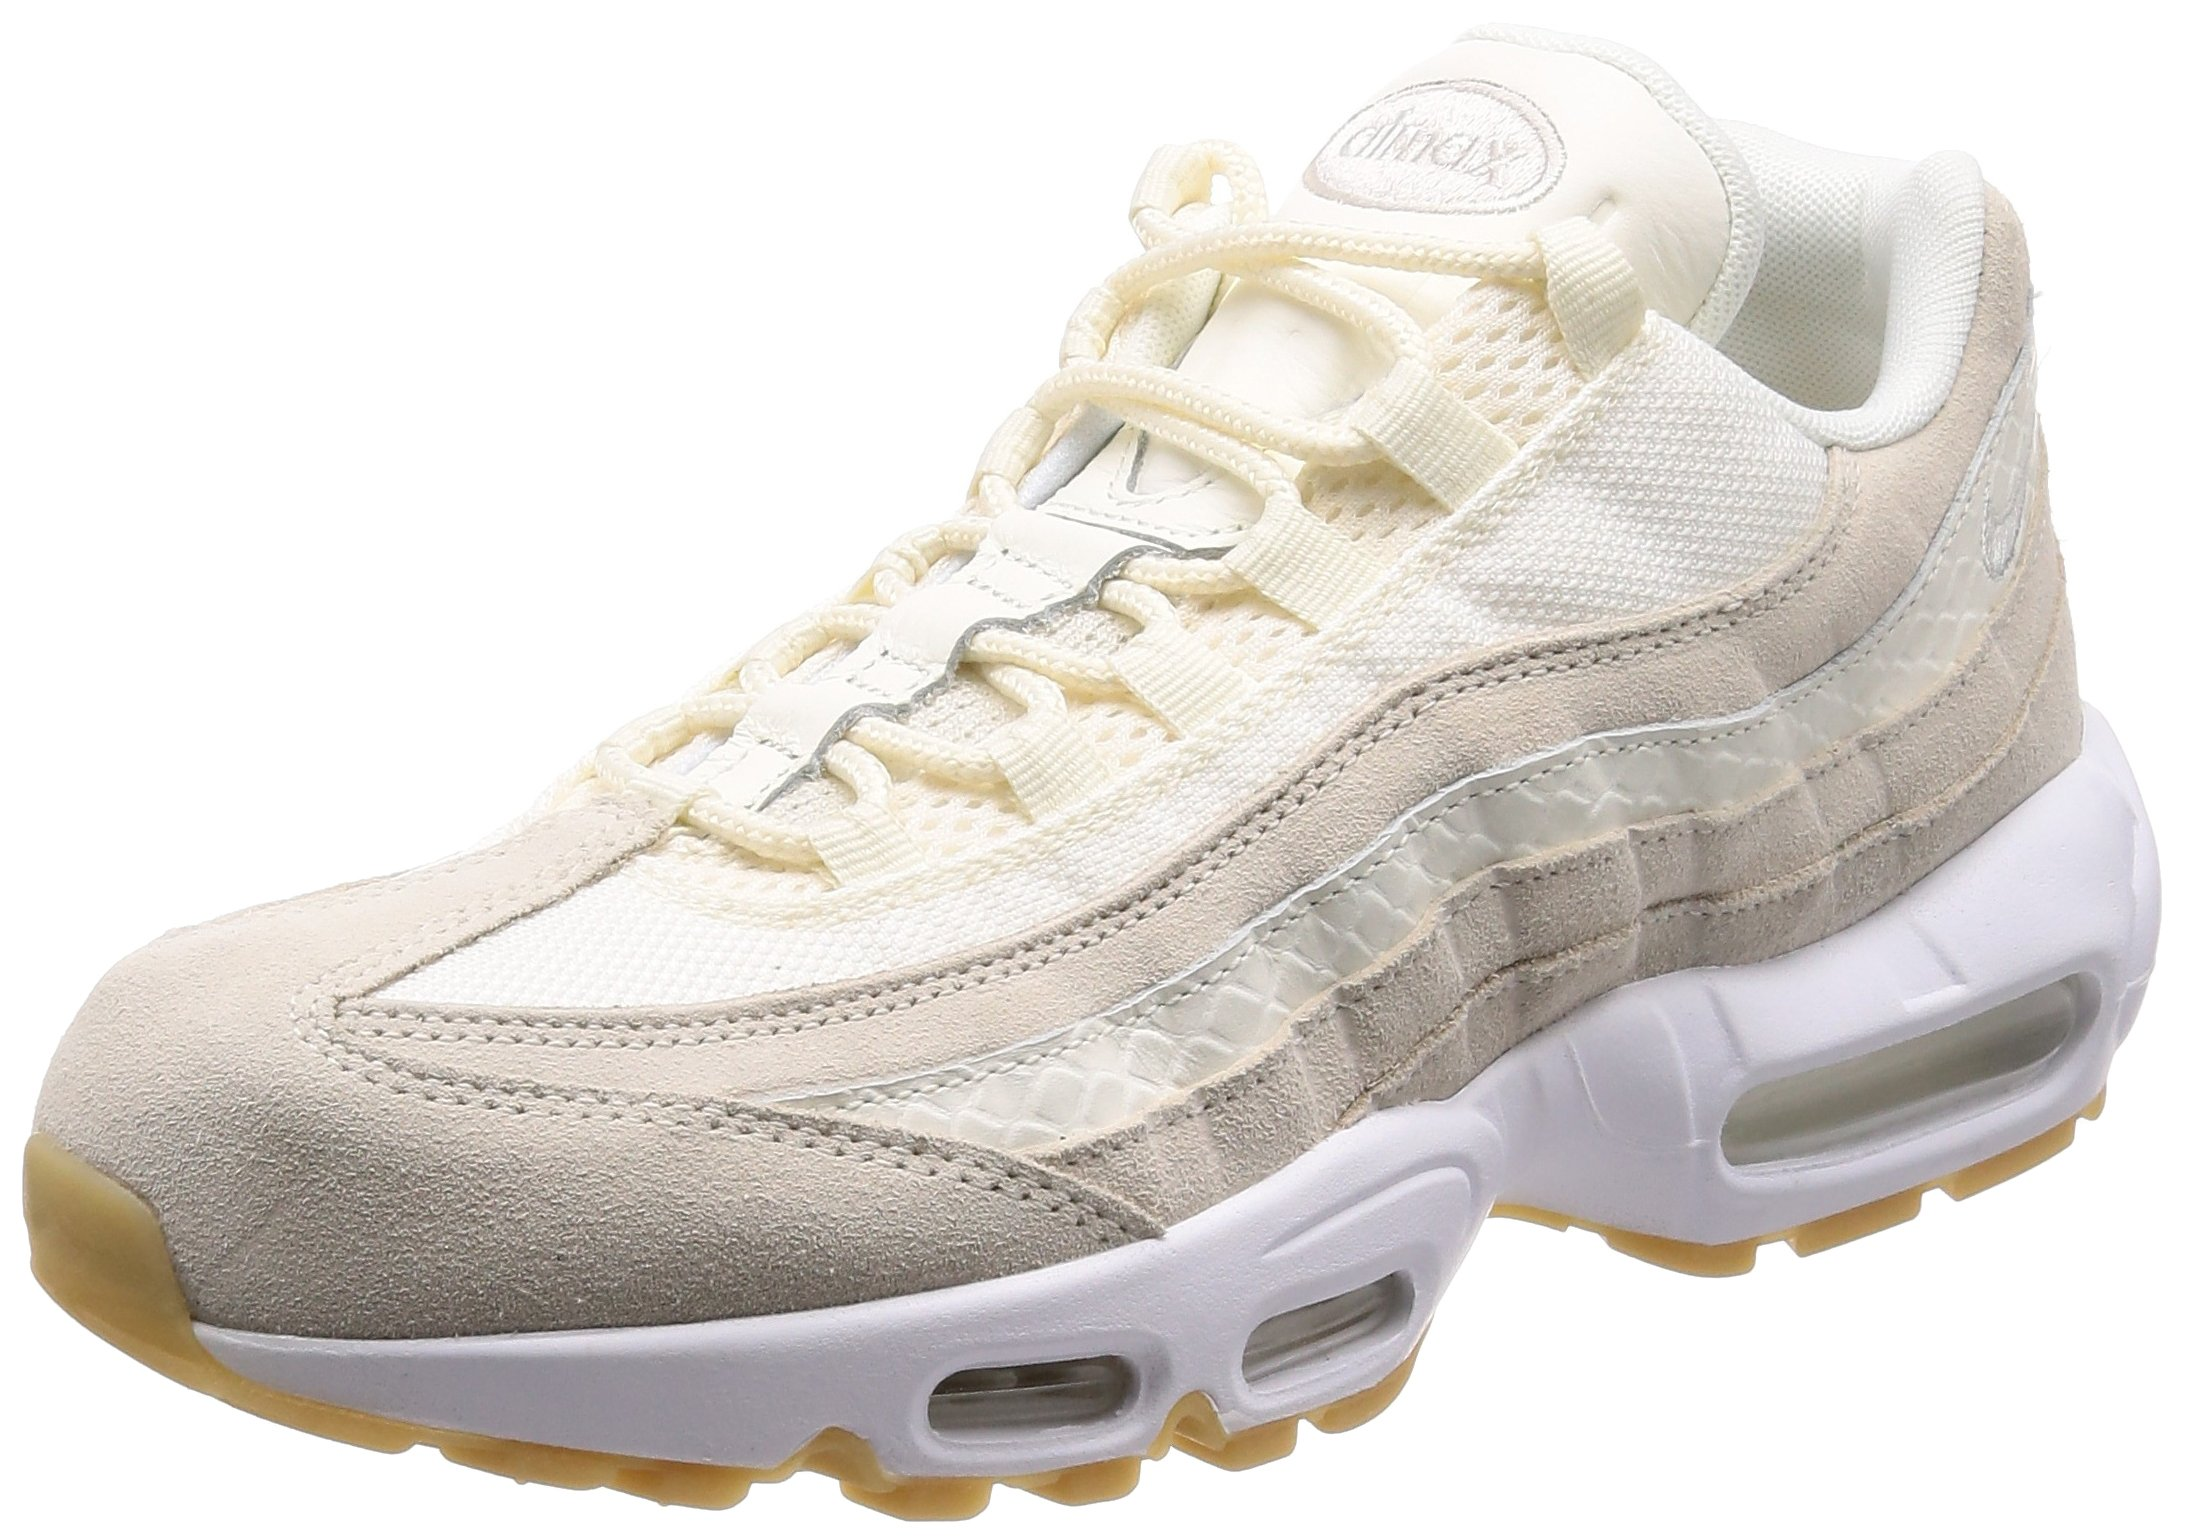 hot sale online 66a5e 9d8b4 Nike Air Max 95 Premium Men's Shoes Sail/Sail-Desert Sand/White 538416-102  (10.5 D(M) US)